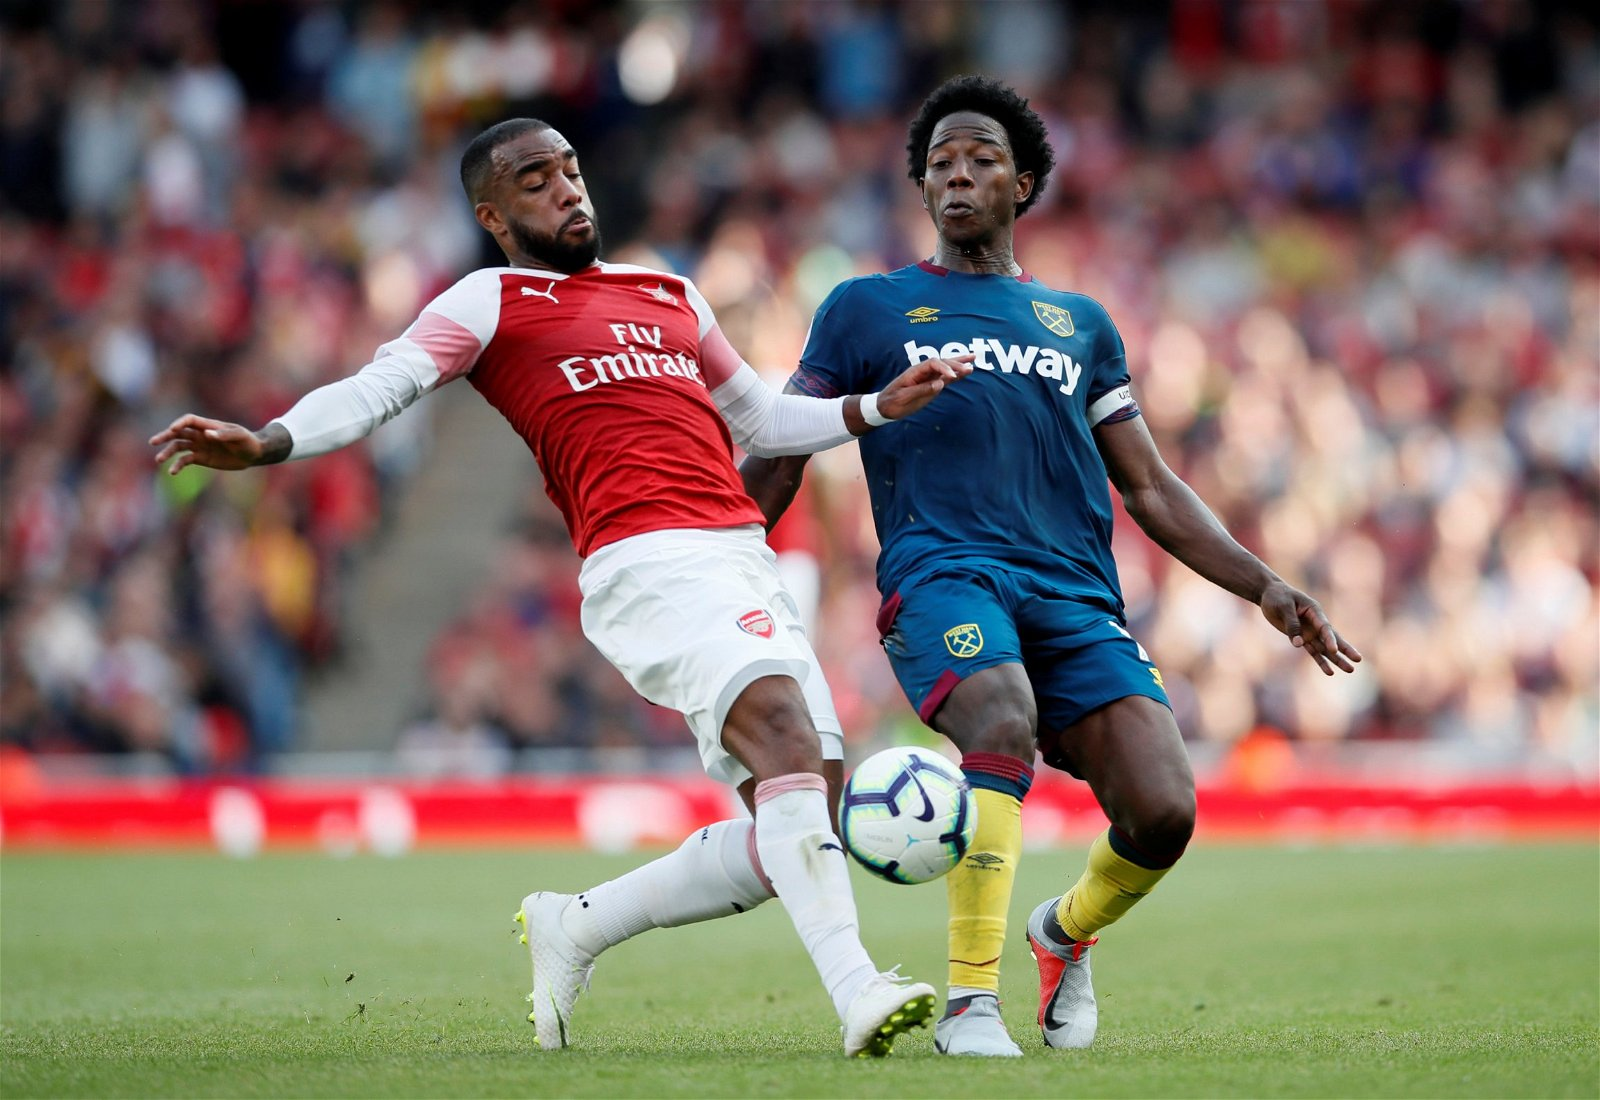 Carlos Sanchez in action against Arsenal's lacazette